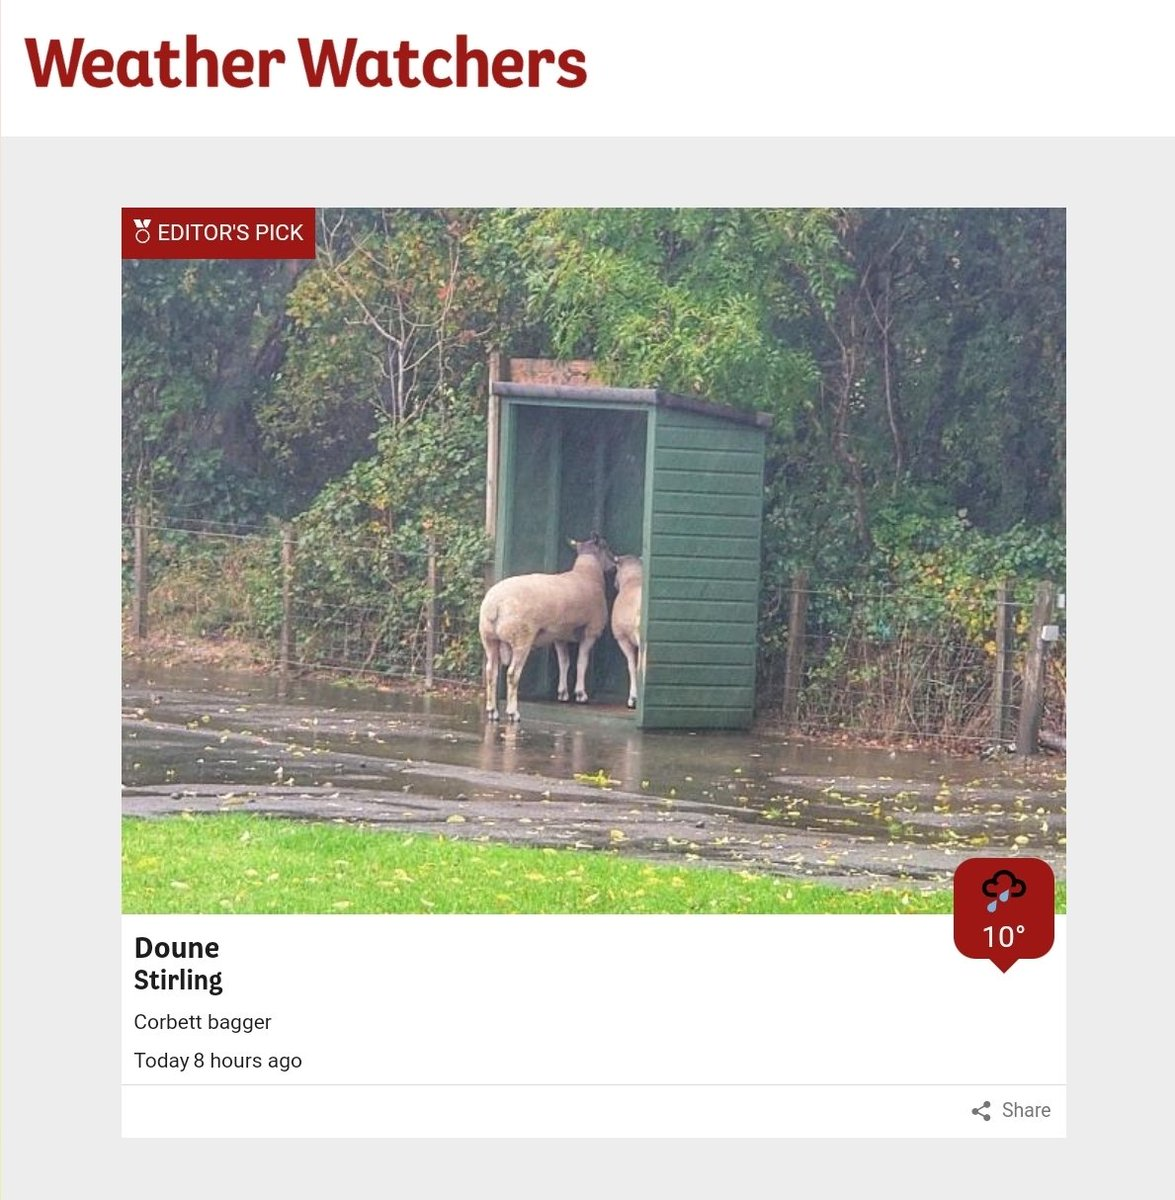 Got to be one of the best Weather Watcher photos I've seen for some time! 😂😂 #GoodNightTwitterWorld @bbcweather #Scotland #MondayFunday 🐑🐑🐑